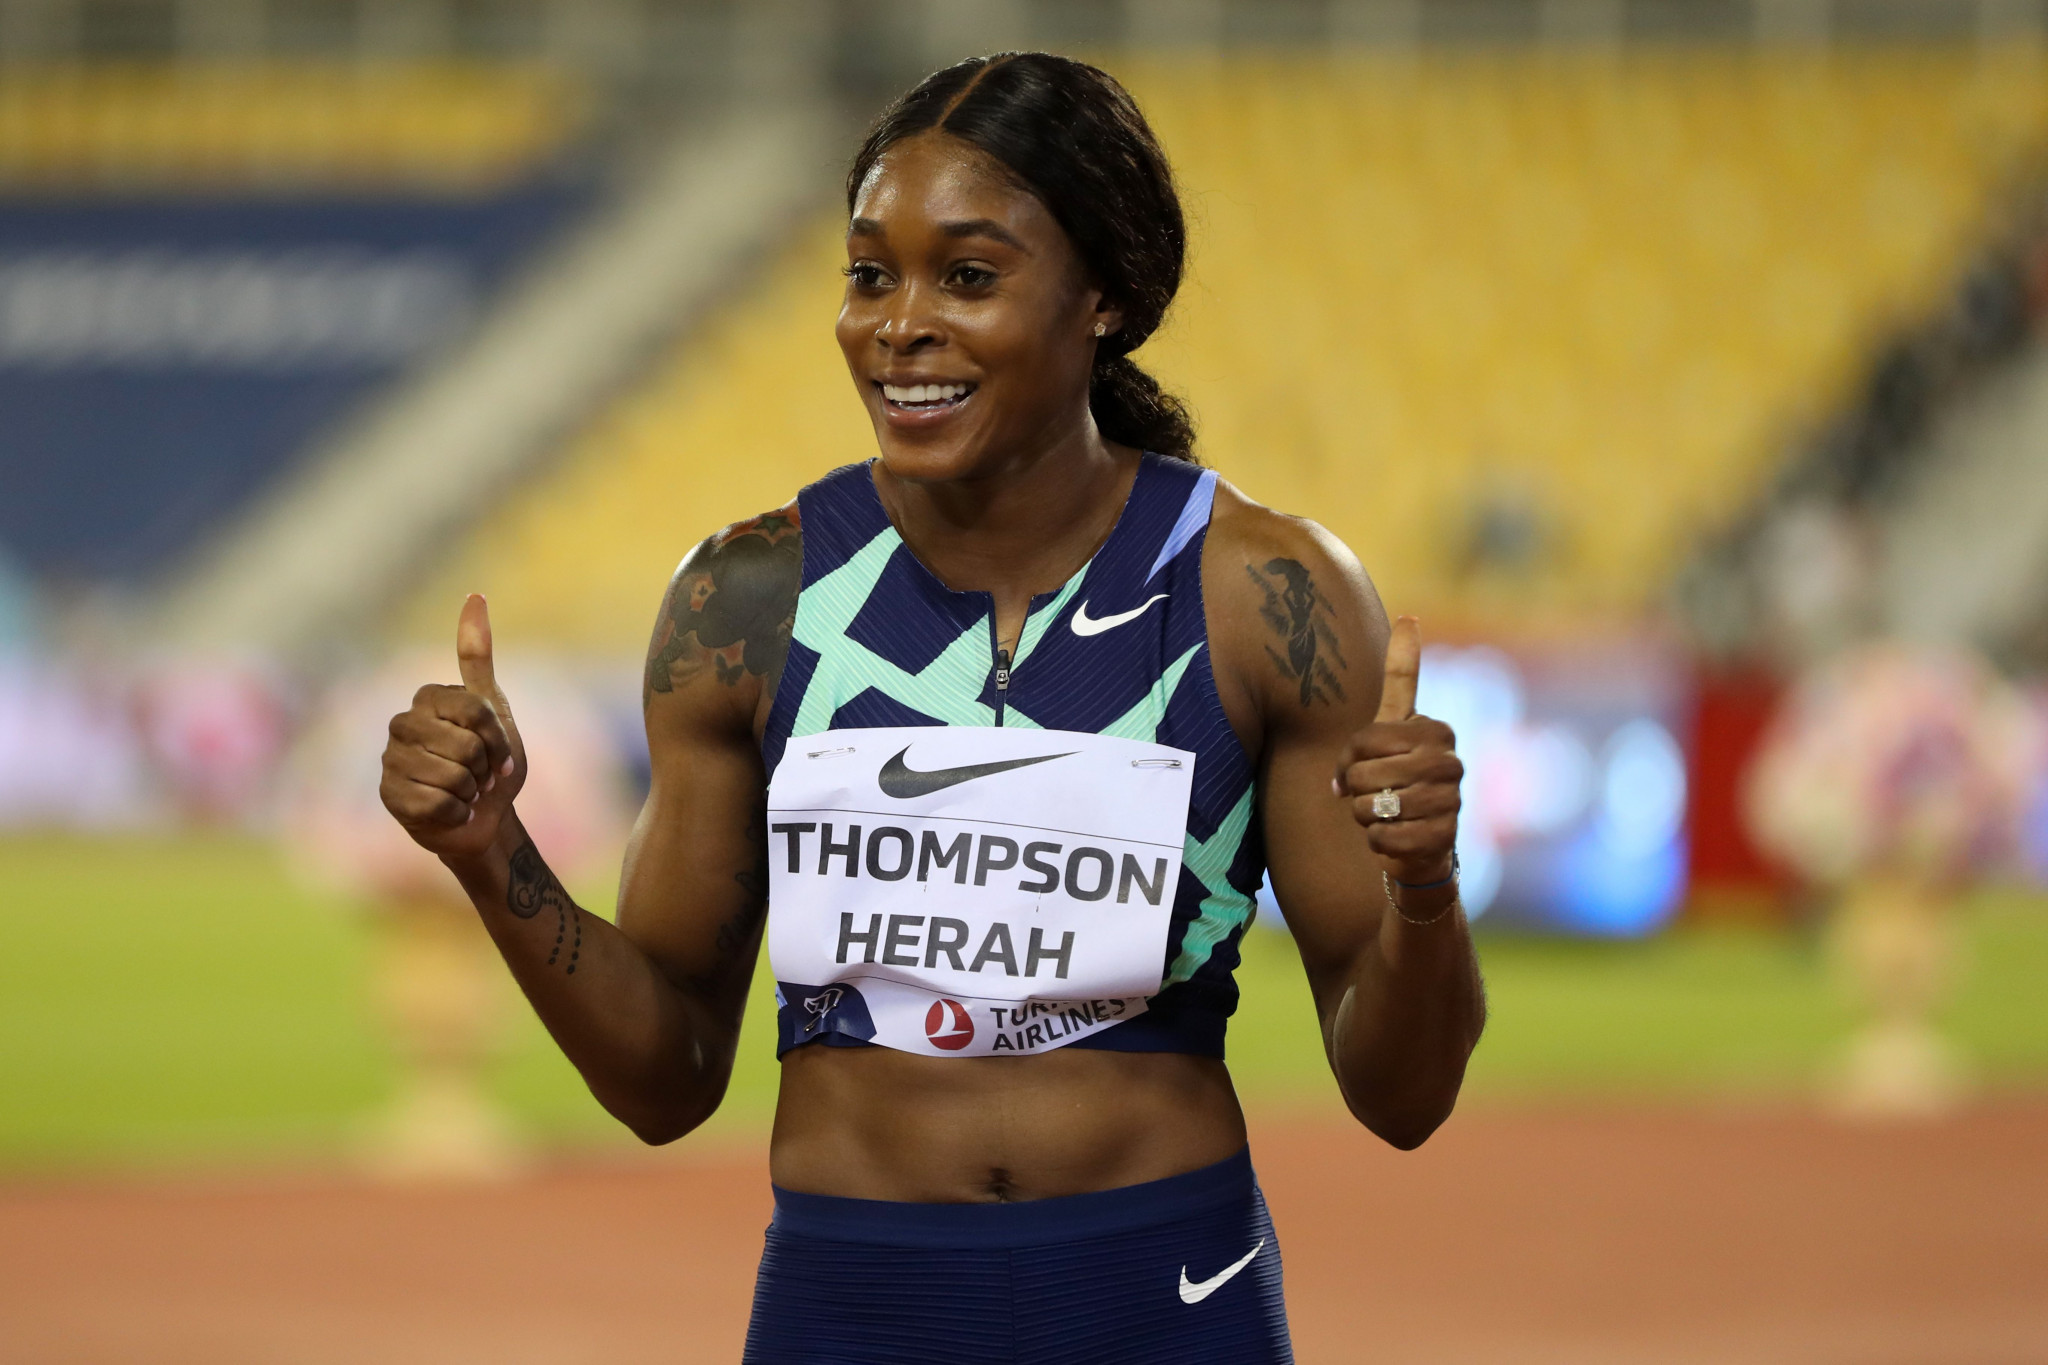 Double Olympic champion Thompson-Herah among five finalists for Female Athlete of the Year